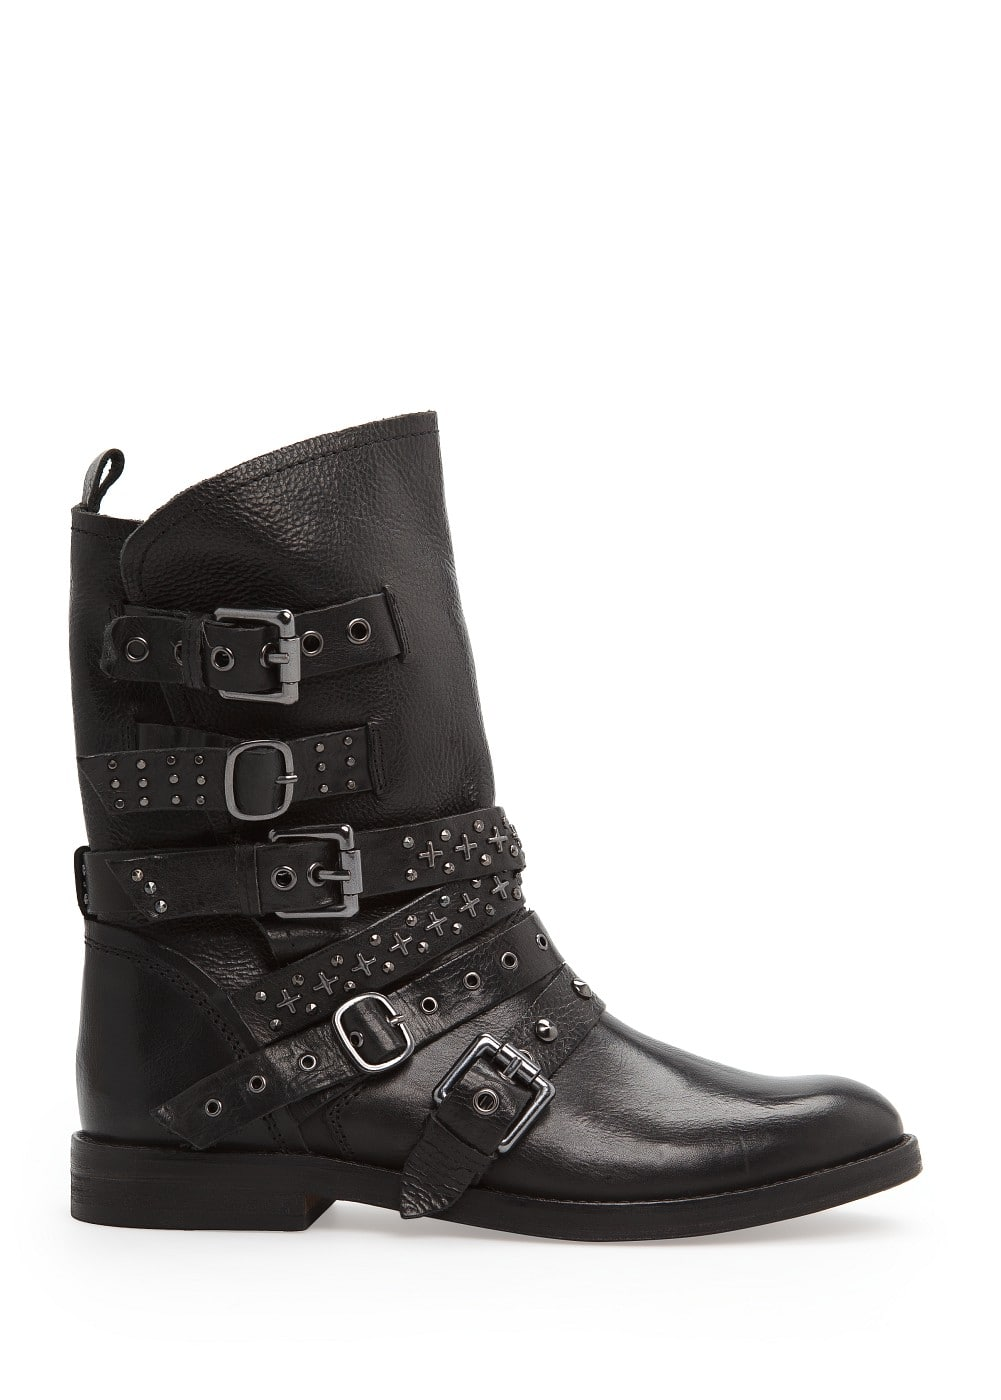 Punk style leather ankle boots